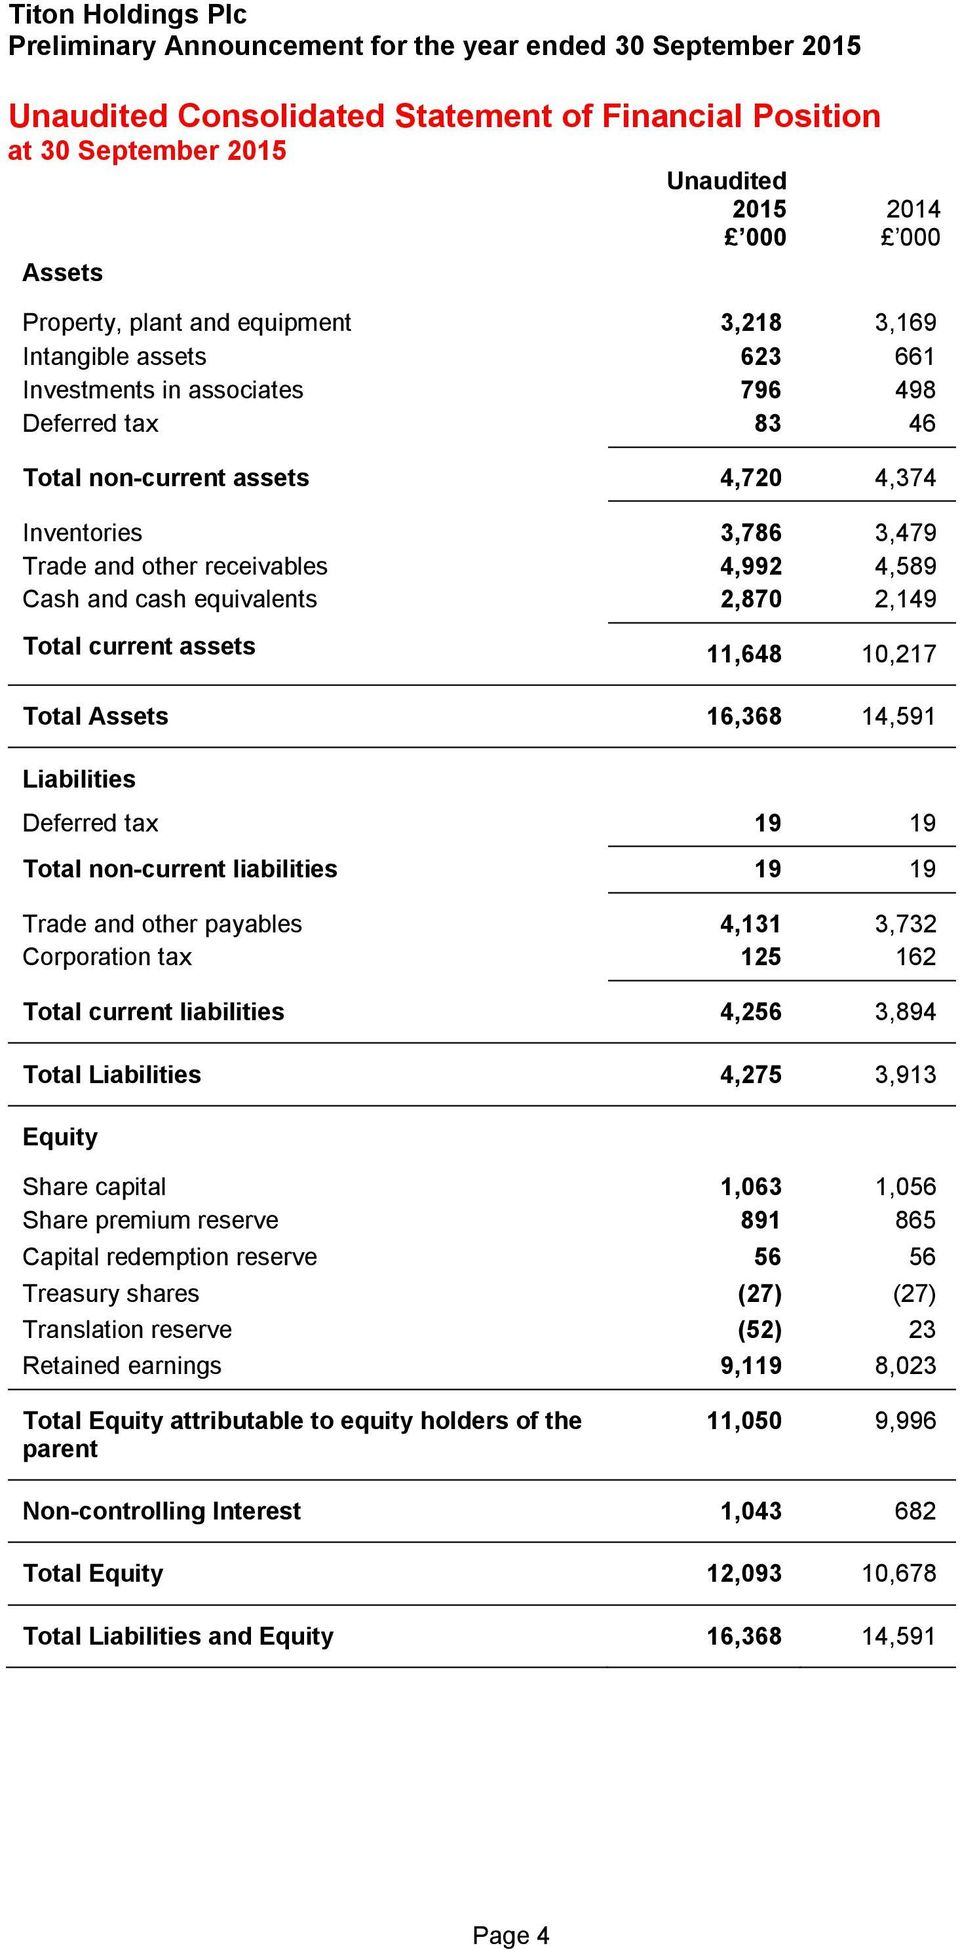 equivalents 2,870 2,149 Total current assets 11,648 10,217 Total Assets 16,368 14,591 Liabilities Deferred tax 19 19 Total non-current liabilities 19 19 Trade and other payables 4,131 3,732